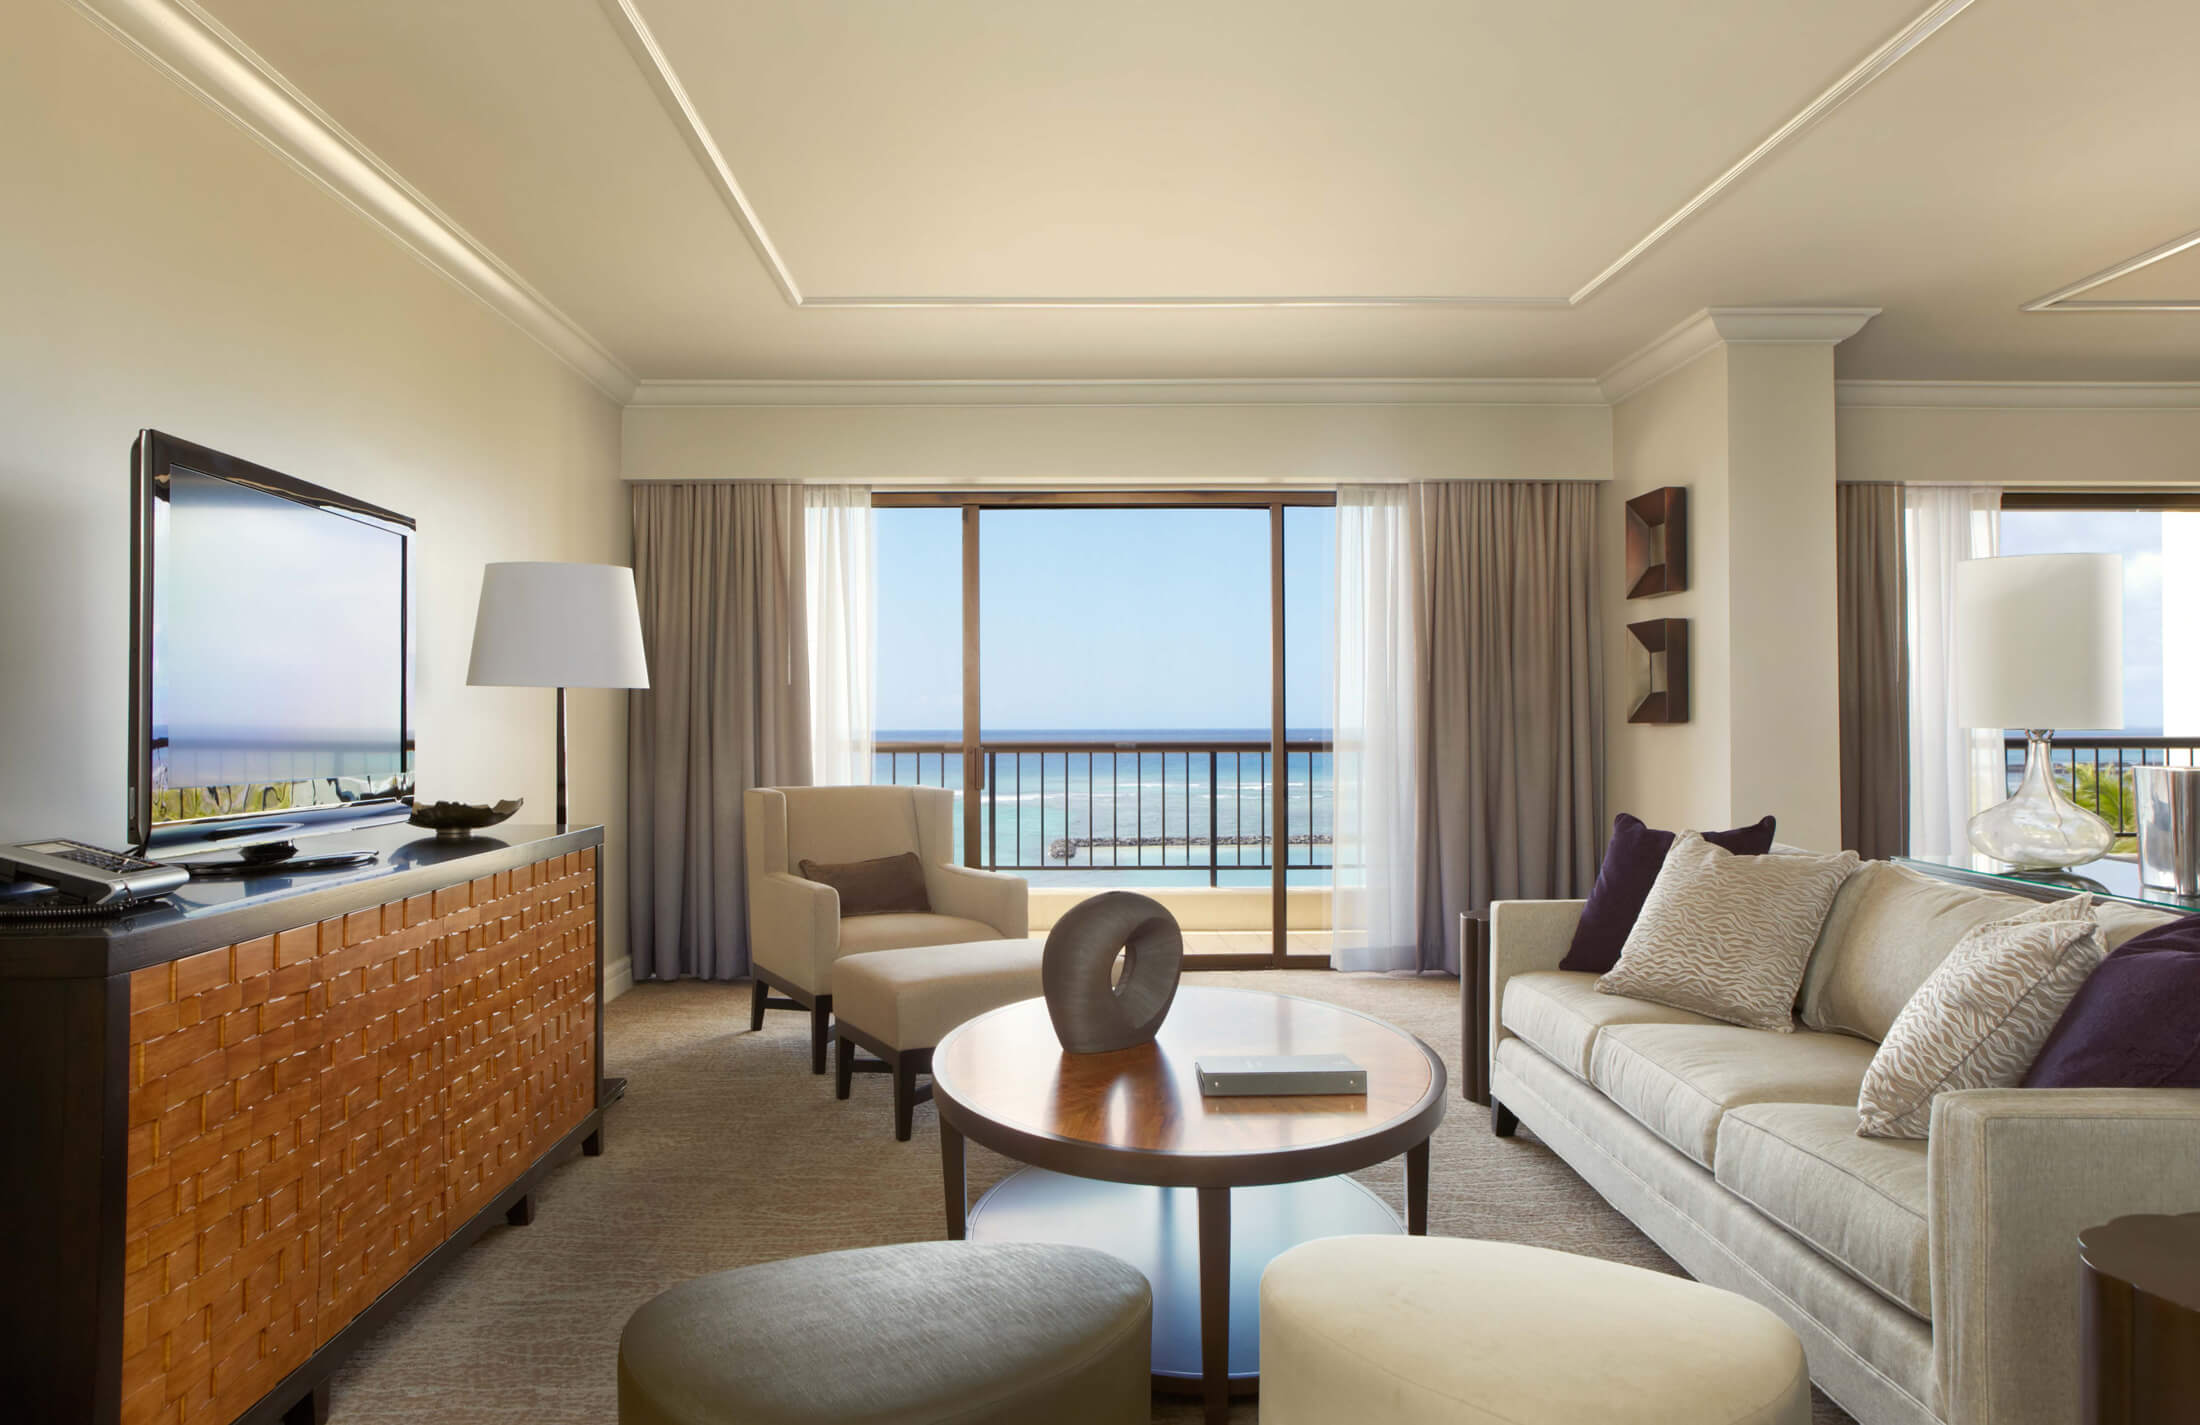 Hilton Hawaiian Village Alii Tower Suite interior design and layout